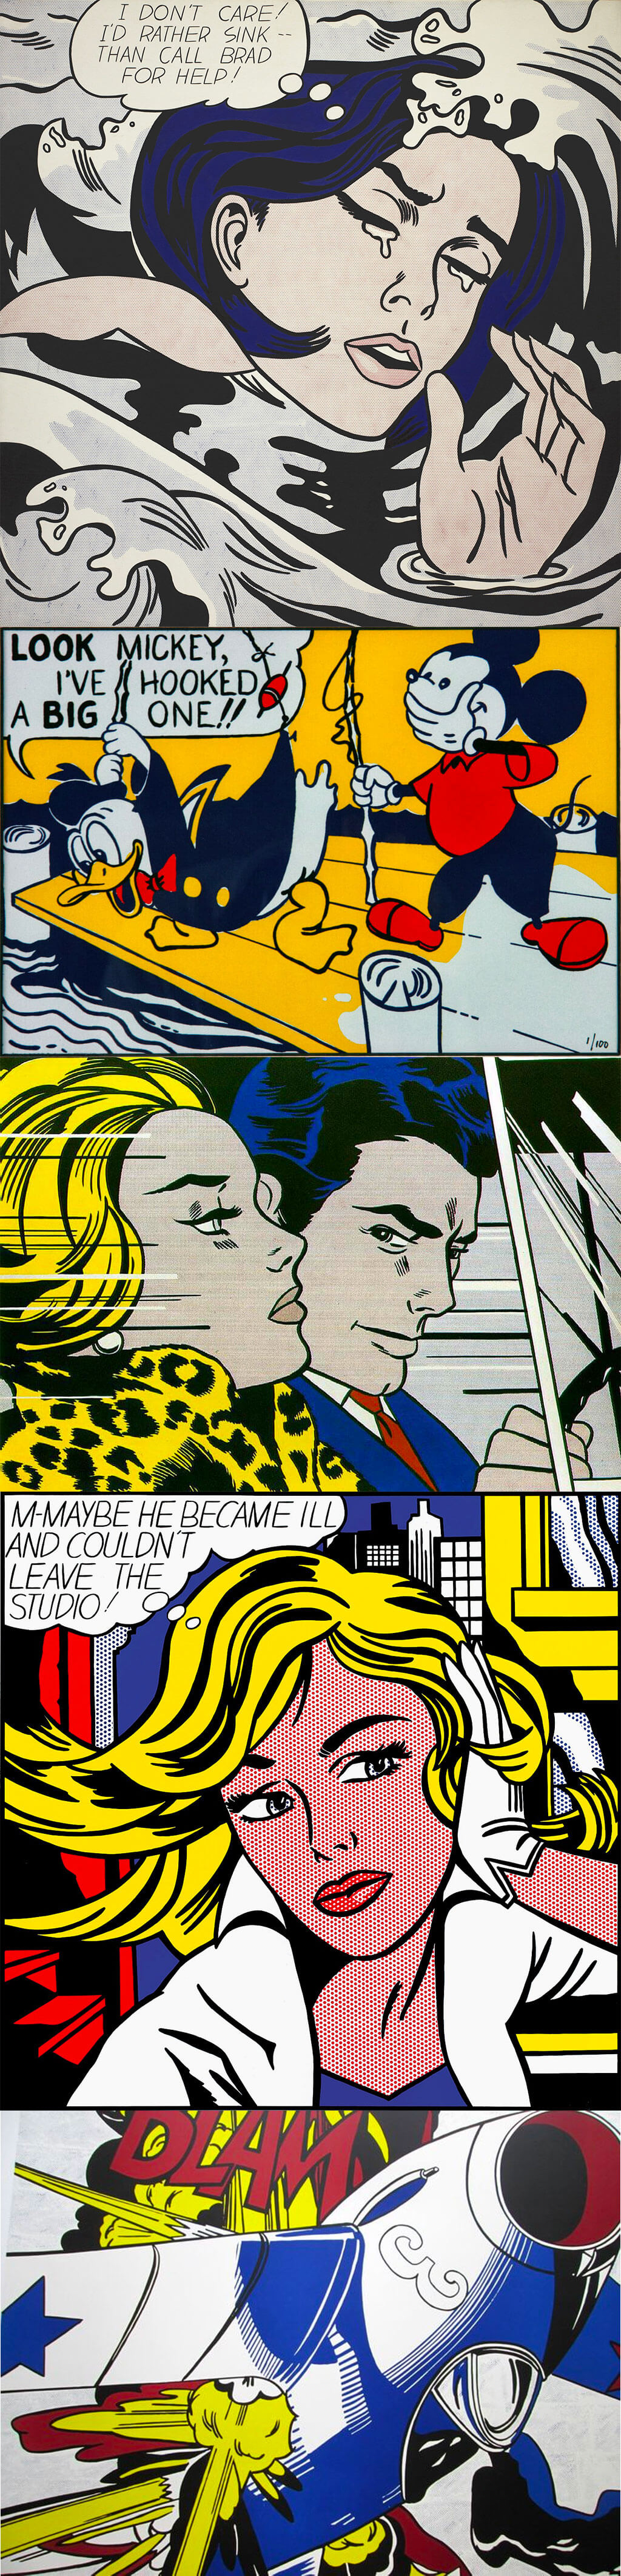 Pop Art by Roy Lichtenstein